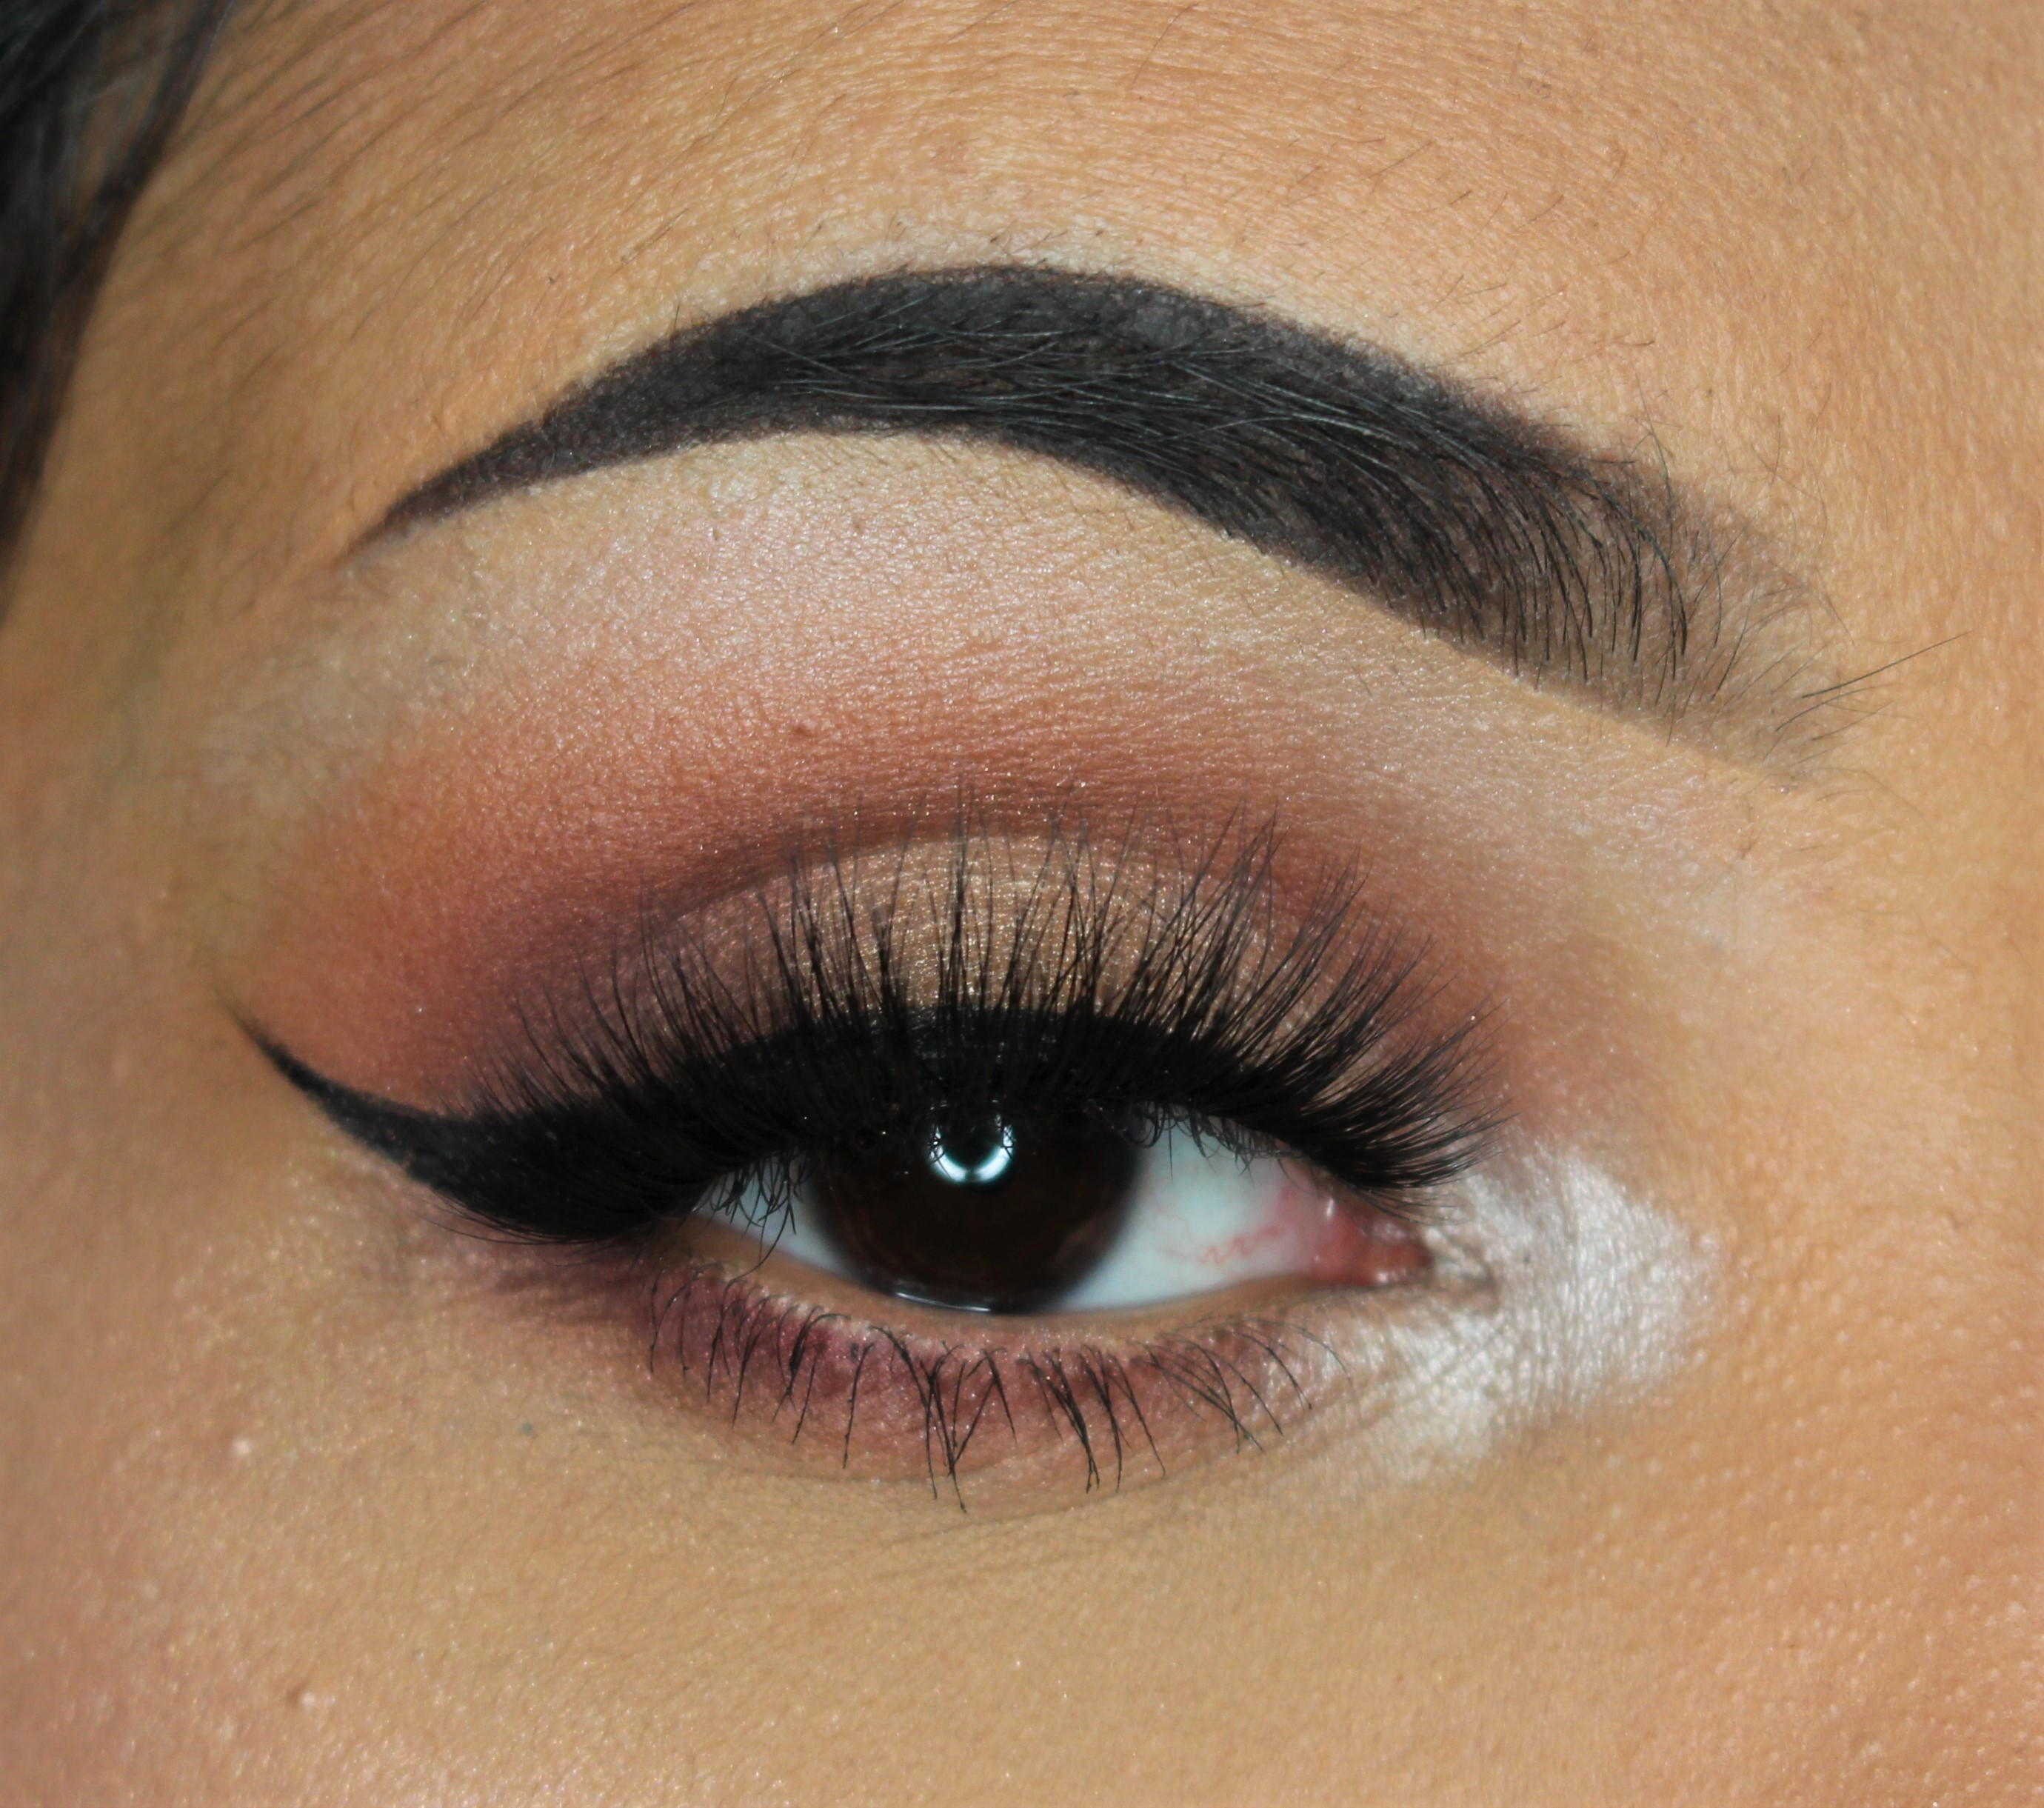 Annytude Wary lashes | Review & make-up look (Anastasia Modern Renaissance palette)